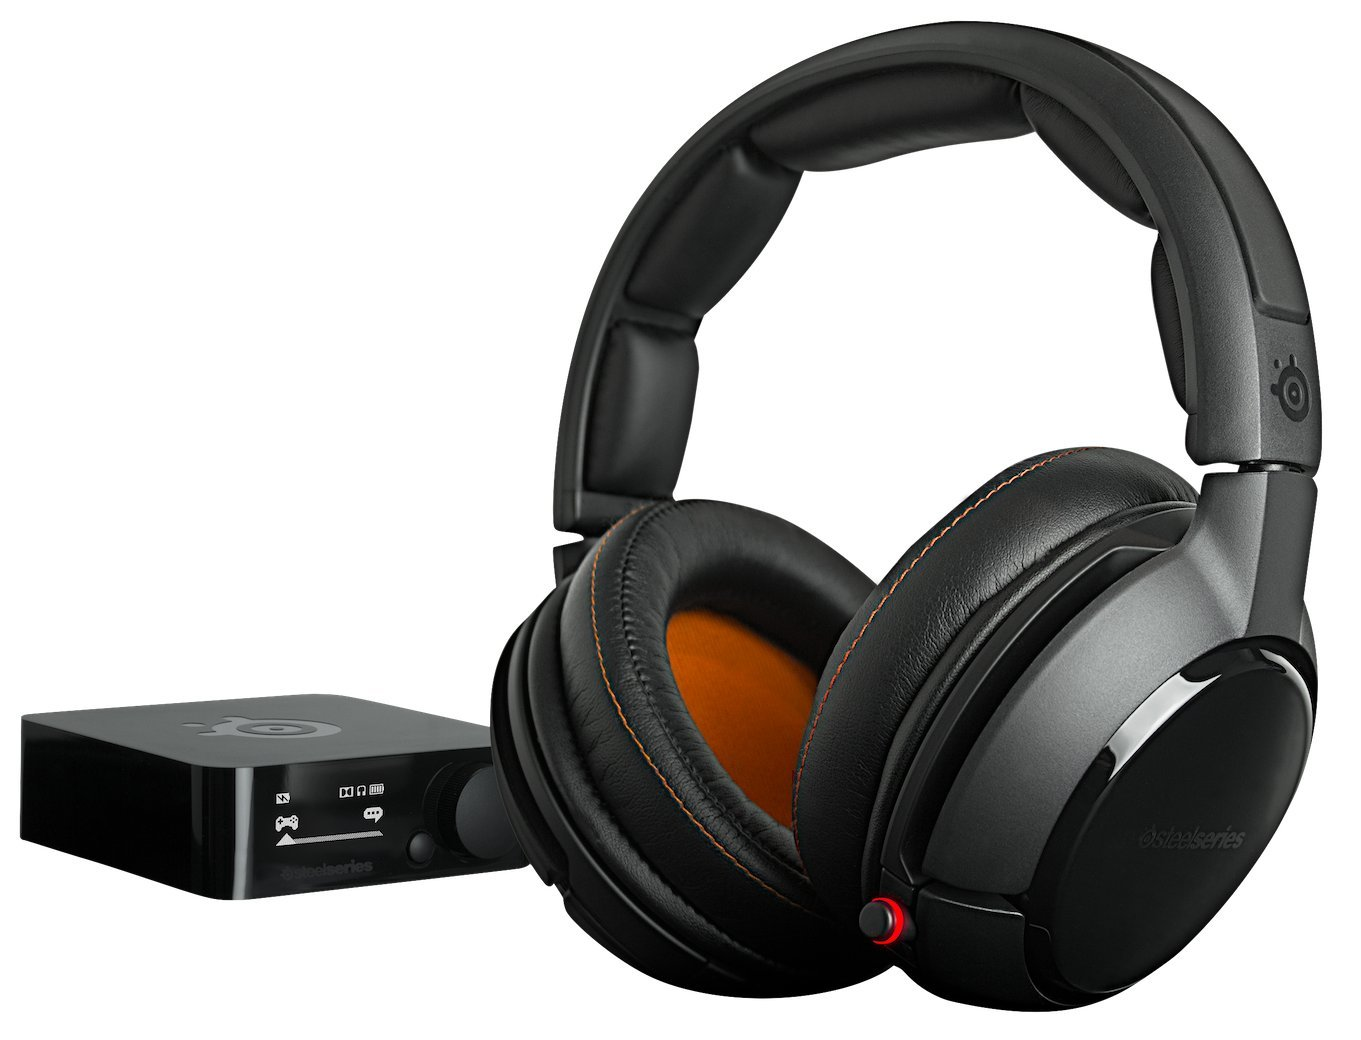 Amazon.com: Gaming headset SteelSeries Siberia 800, Black: Computers & Accessories